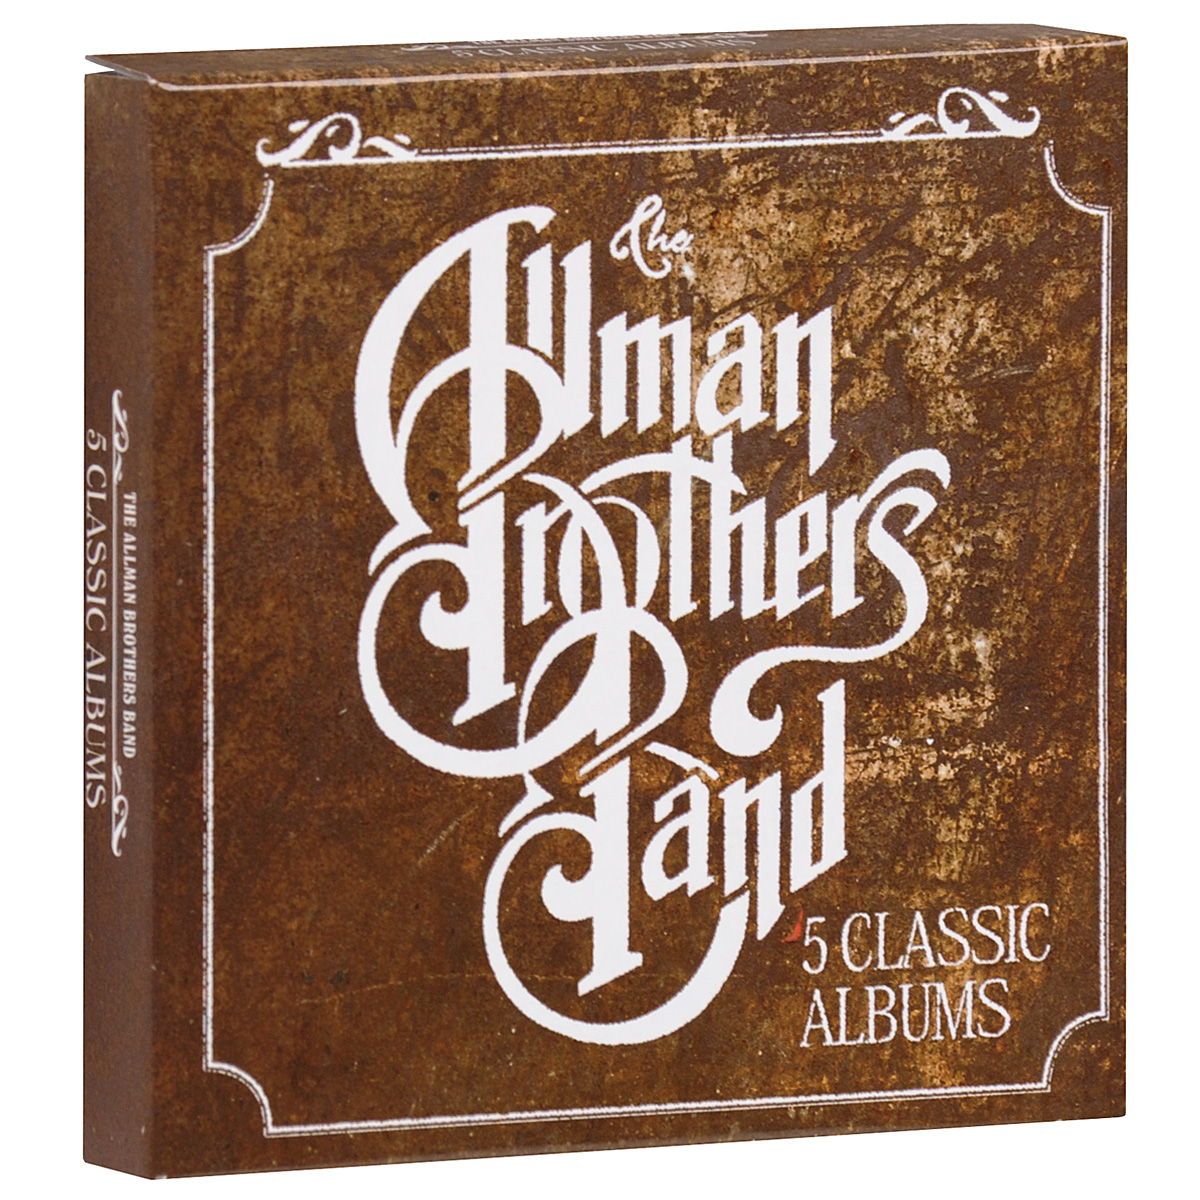 Фото - The Allman Brothers Band,The Allman Brothers Band The Allman Brothers Band. 5 Classic Albums (5 CD) the penguin german phrasebook